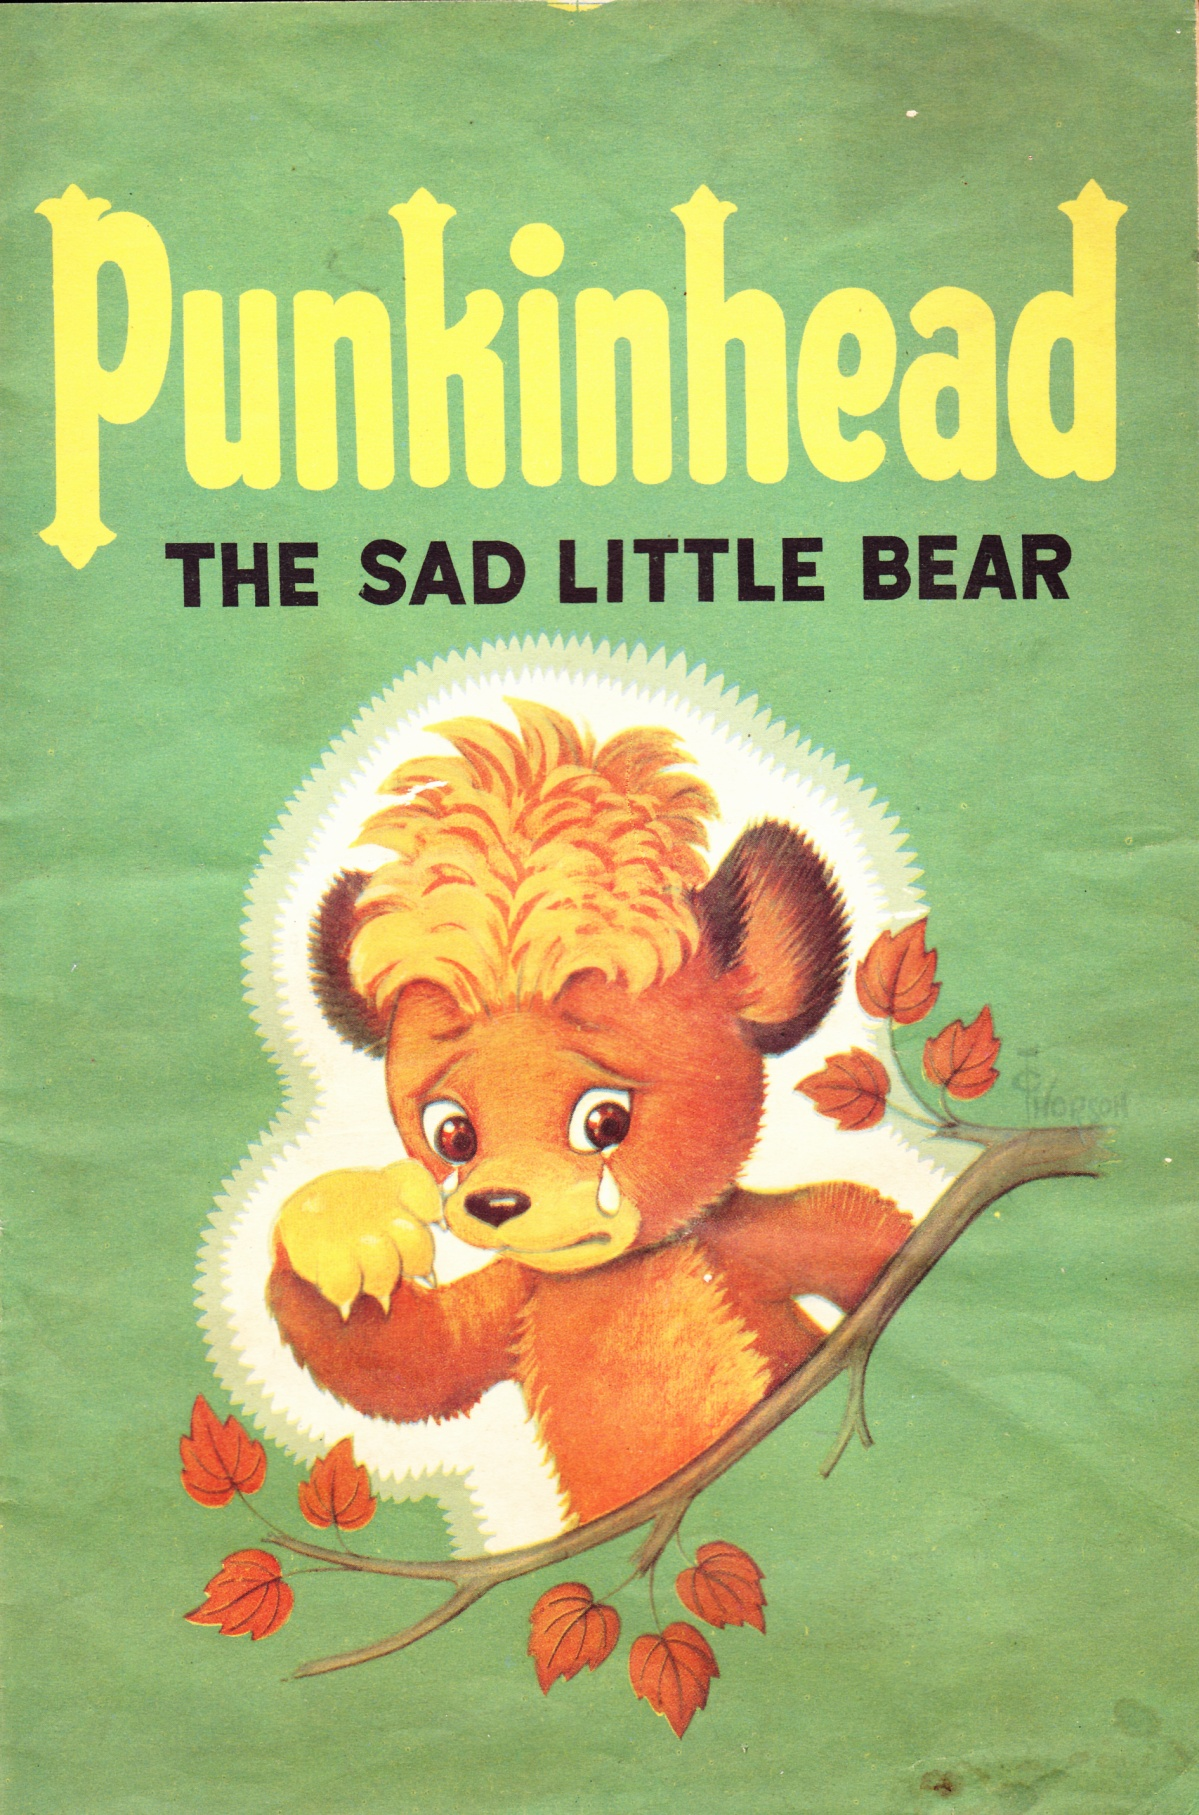 C:\Users\Robert\Documents\CARTOONING ILLUSTRATION ANIMATION\IMAGE CARTOON\IMAGE CARTOON P\PUNKINHEAD The Sad Little Bear, 1.jpg